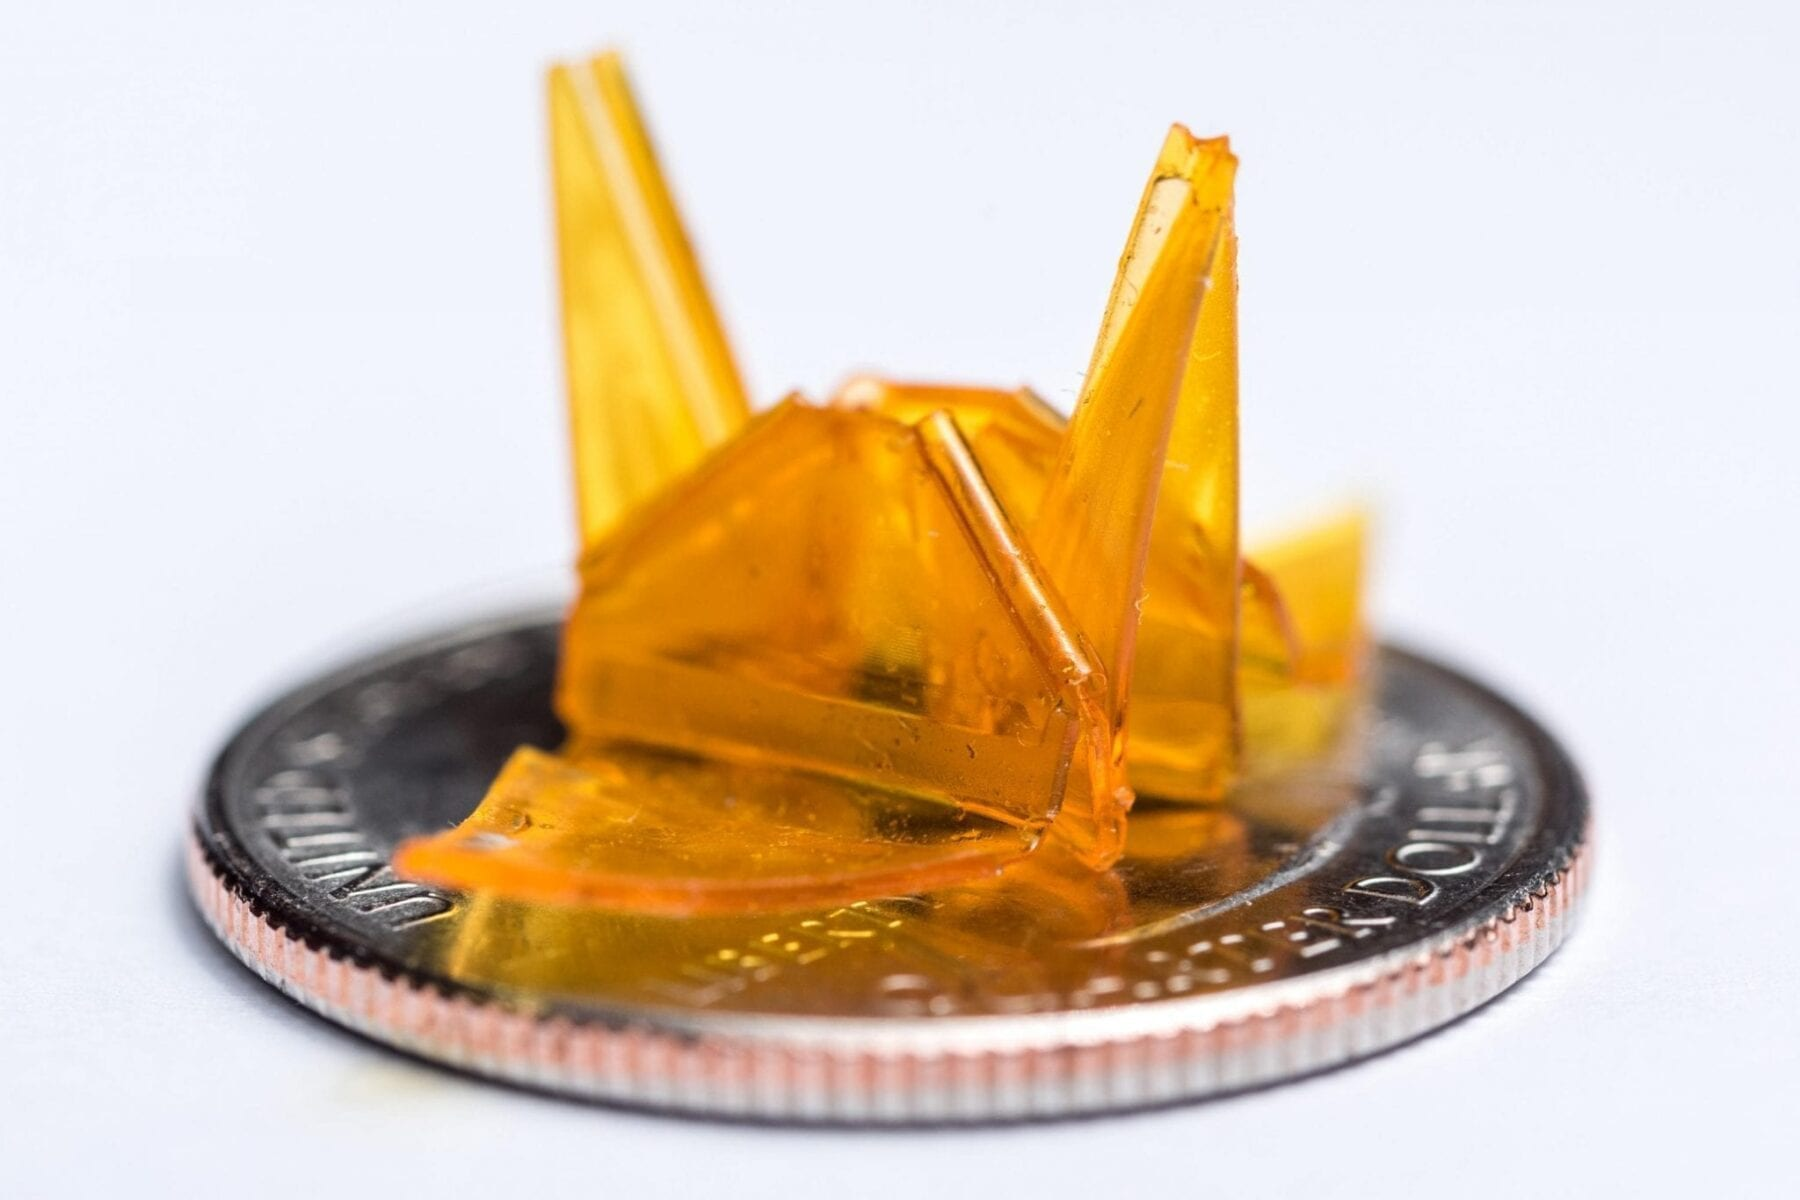 PowerPoint has a new job: Producing self-folding three-dimensional origami structures from photocurable liquid polymers